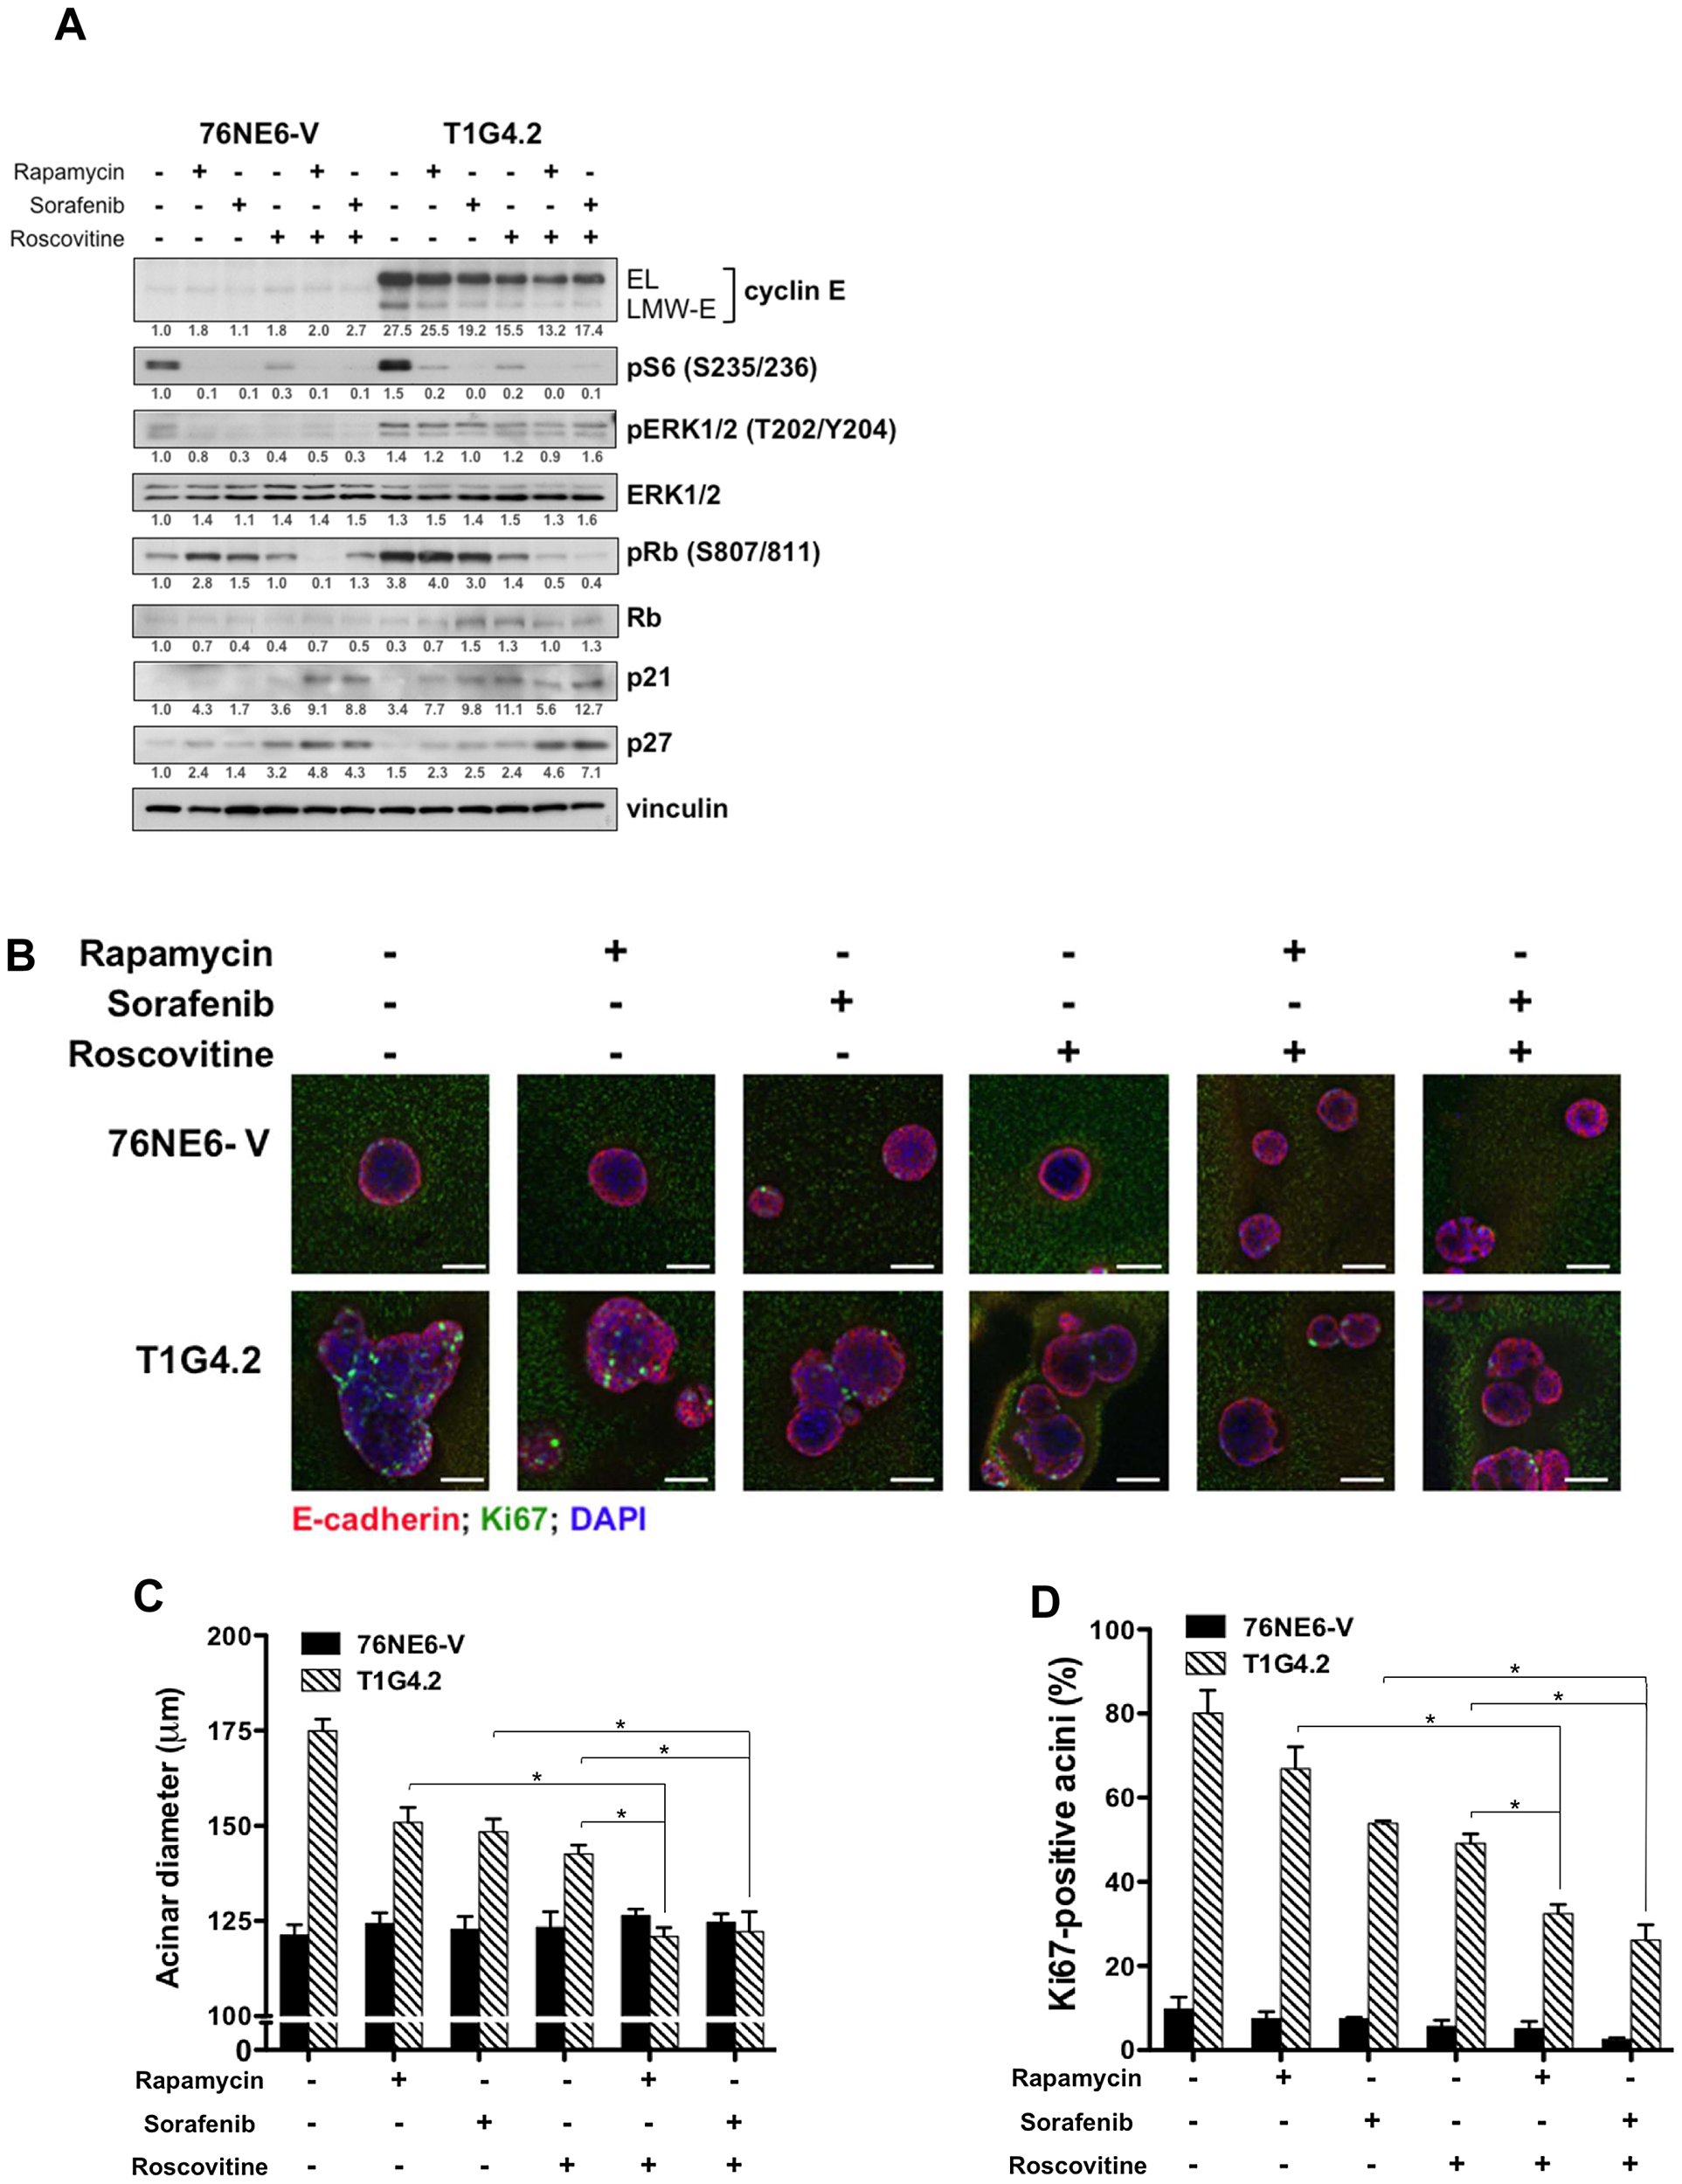 Combination drug treatment prevents induction of aberrant acinar development by LMW-E.